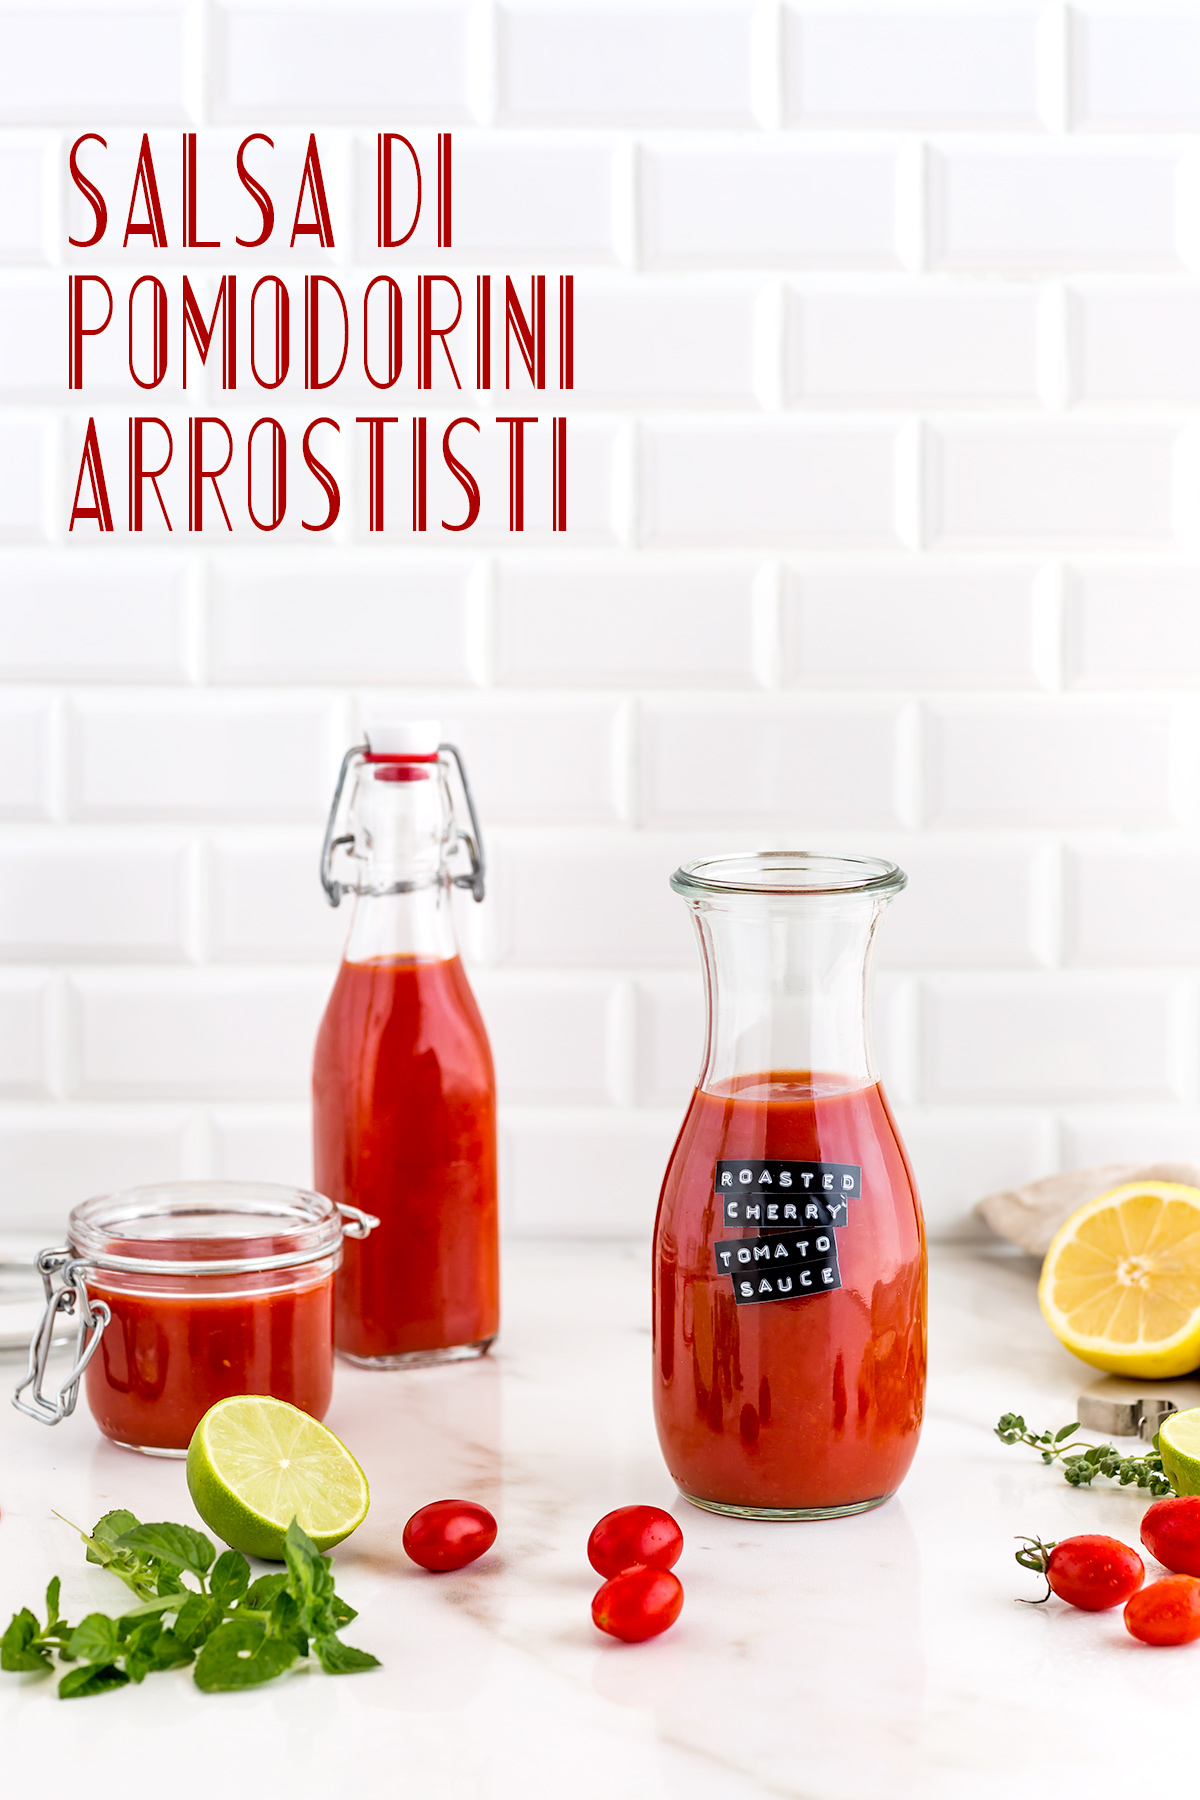 come fare la SALSA di POMODORINI ARROSTITI ricetta passata di pomodori confit how to make ROASTED CHERRY TOMATO SAUCE vegan tomato suop recipe